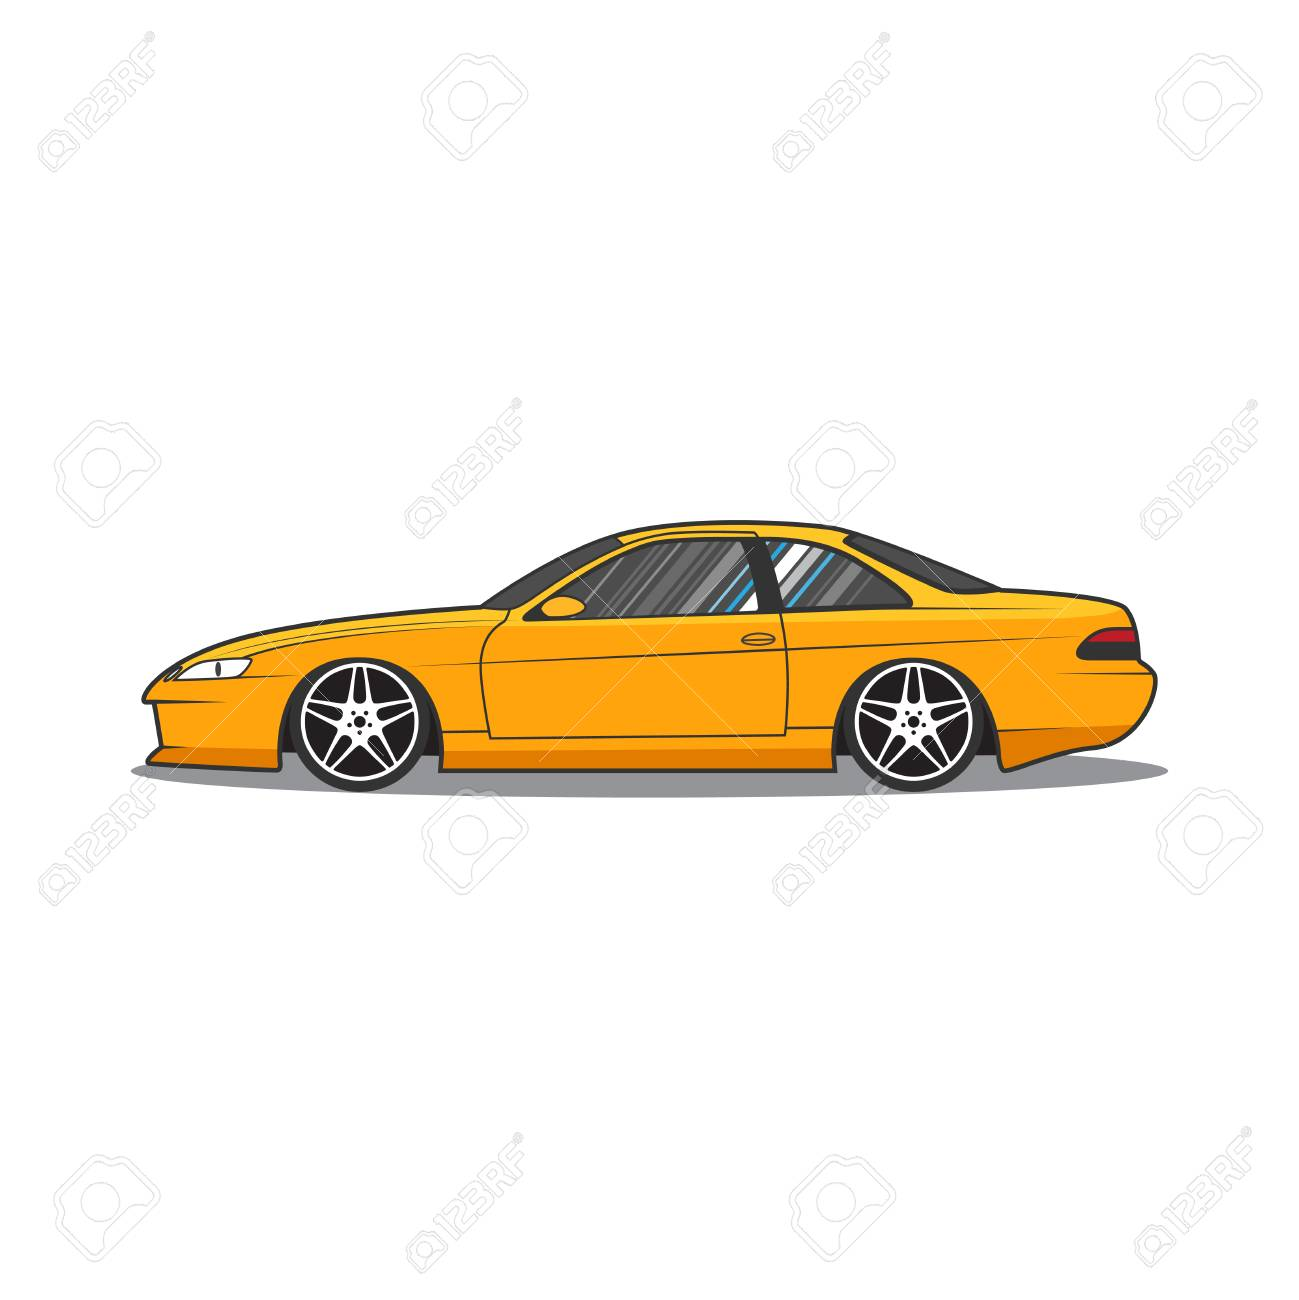 1299x1300 Japan Sport Car. Car Sketch. Side View. Royalty Free Cliparts